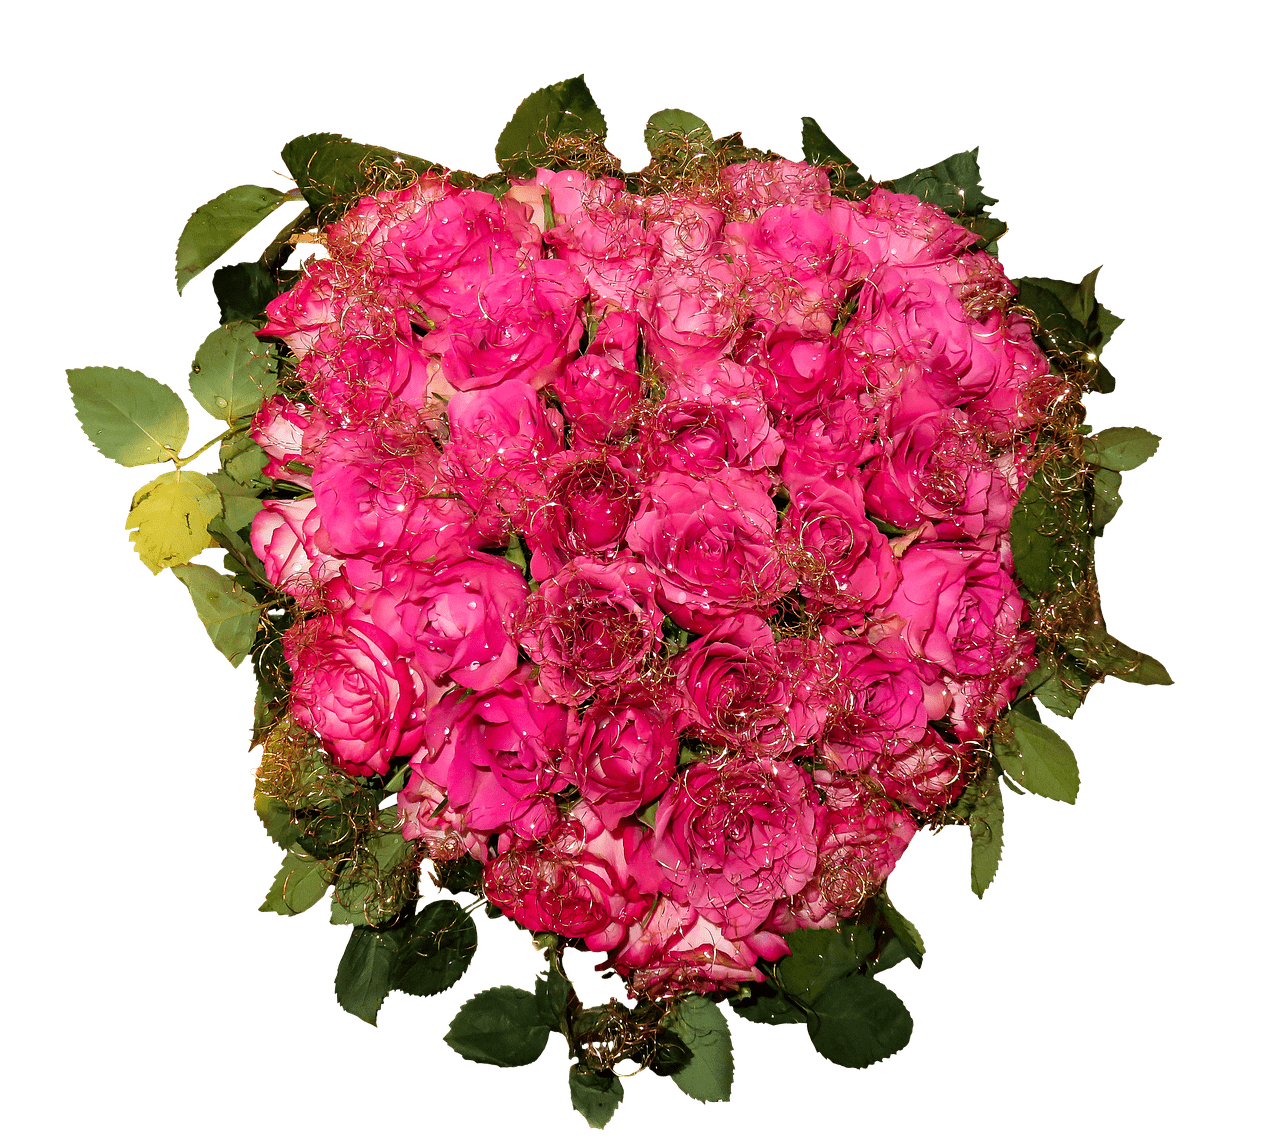 Pink Roses Heart Shaped Bouquet transparent PNG - StickPNG